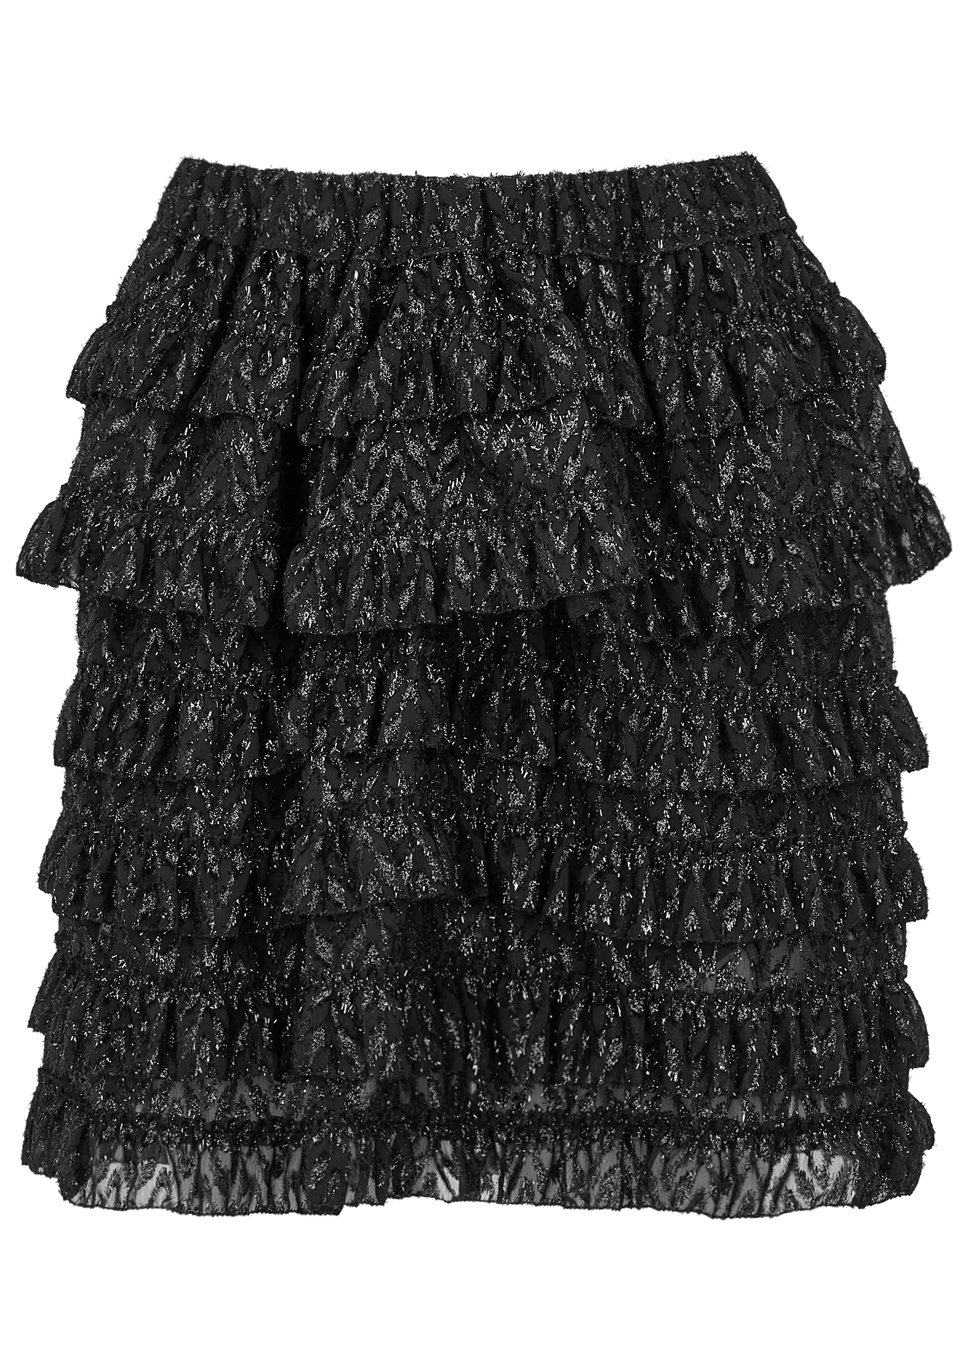 Blair Metallic Fil Coupé Mini Skirt - pattern: plain; fit: loose/voluminous; style: tiered; waist: high rise; predominant colour: black; occasions: casual, creative work; length: just above the knee; fibres: silk - 100%; hip detail: adds bulk at the hips; texture group: silky - light; pattern type: fabric; wardrobe: basic; season: a/w 2016